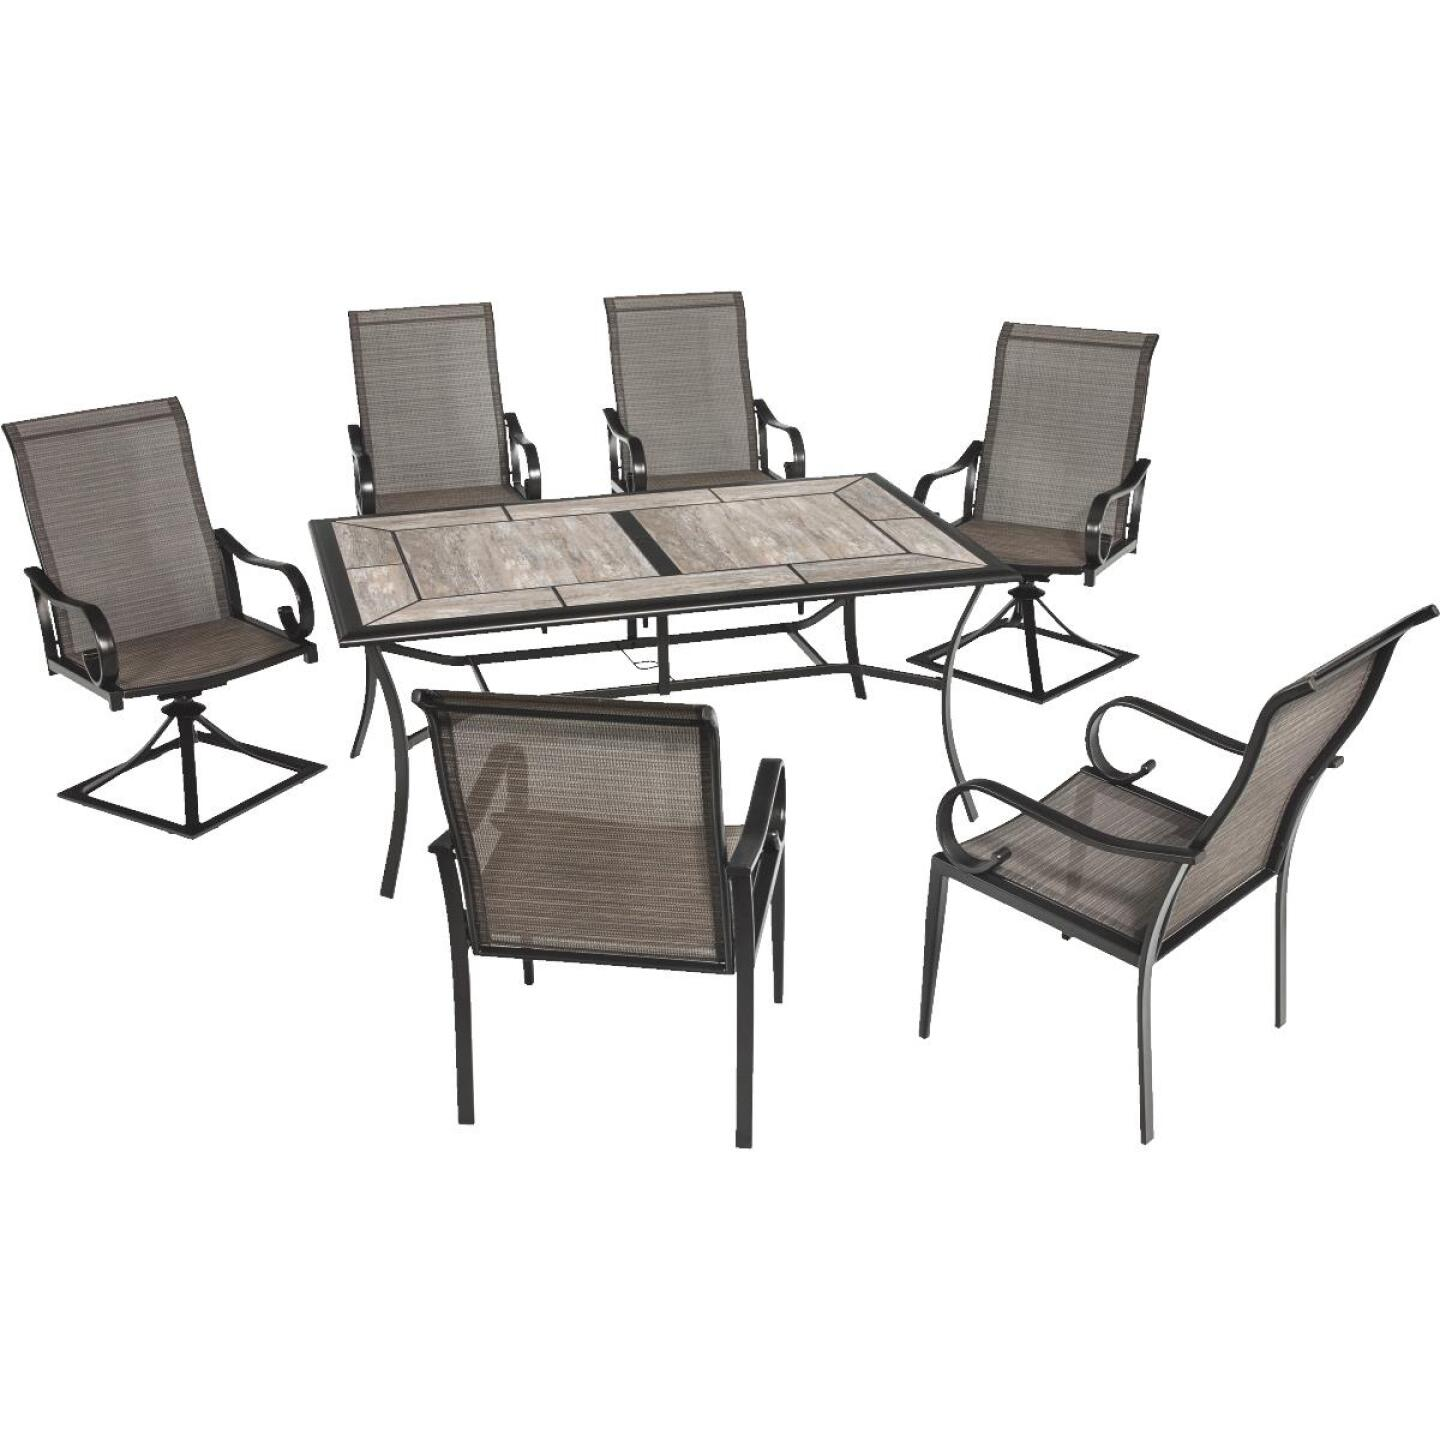 Outdoor Expressions Berkshire 7-Piece Dining Set Image 254